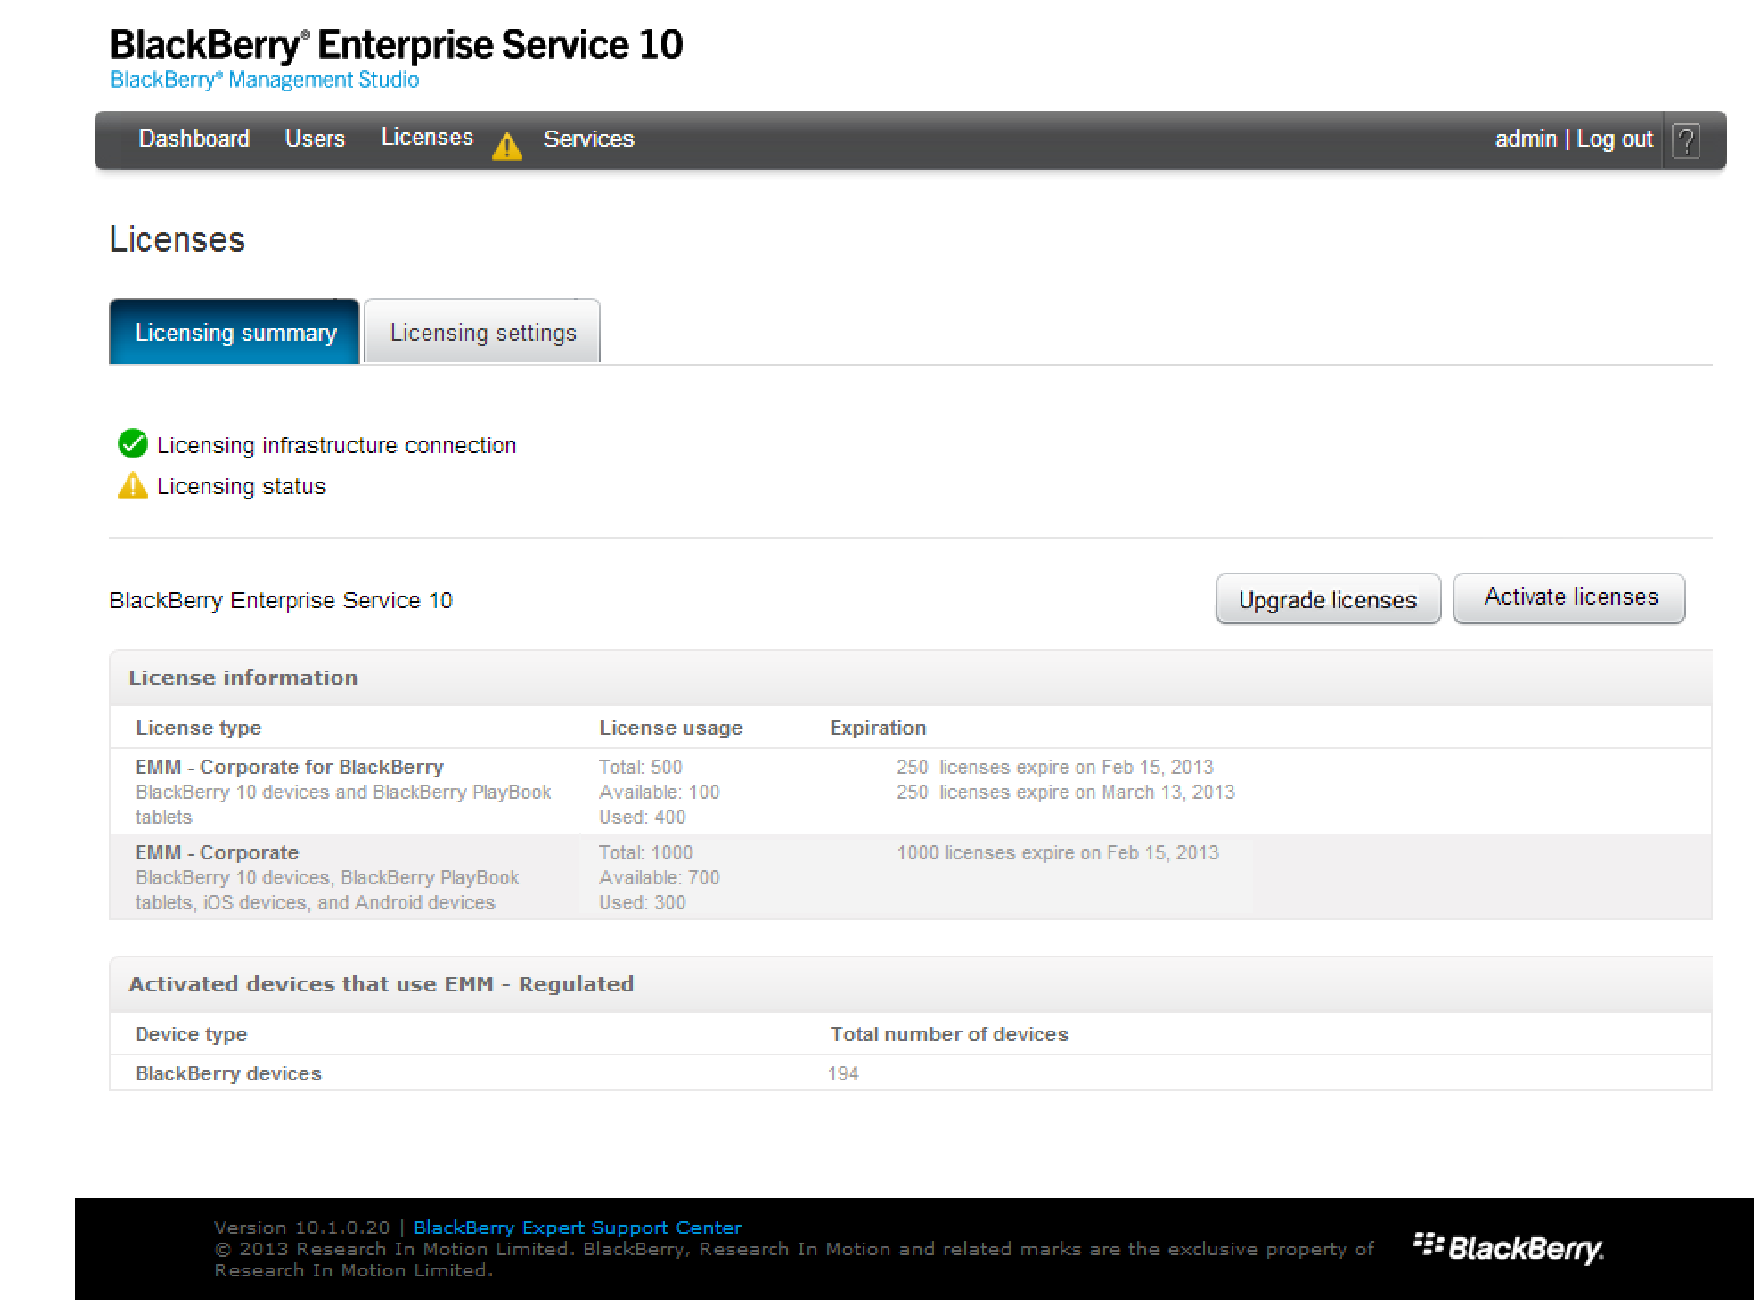 Preventing issues with your BlackBerry Enterprise Service 10 installation before they happen Monitor license usage BlackBerry Management Studio allows administrators with the Security Administrator